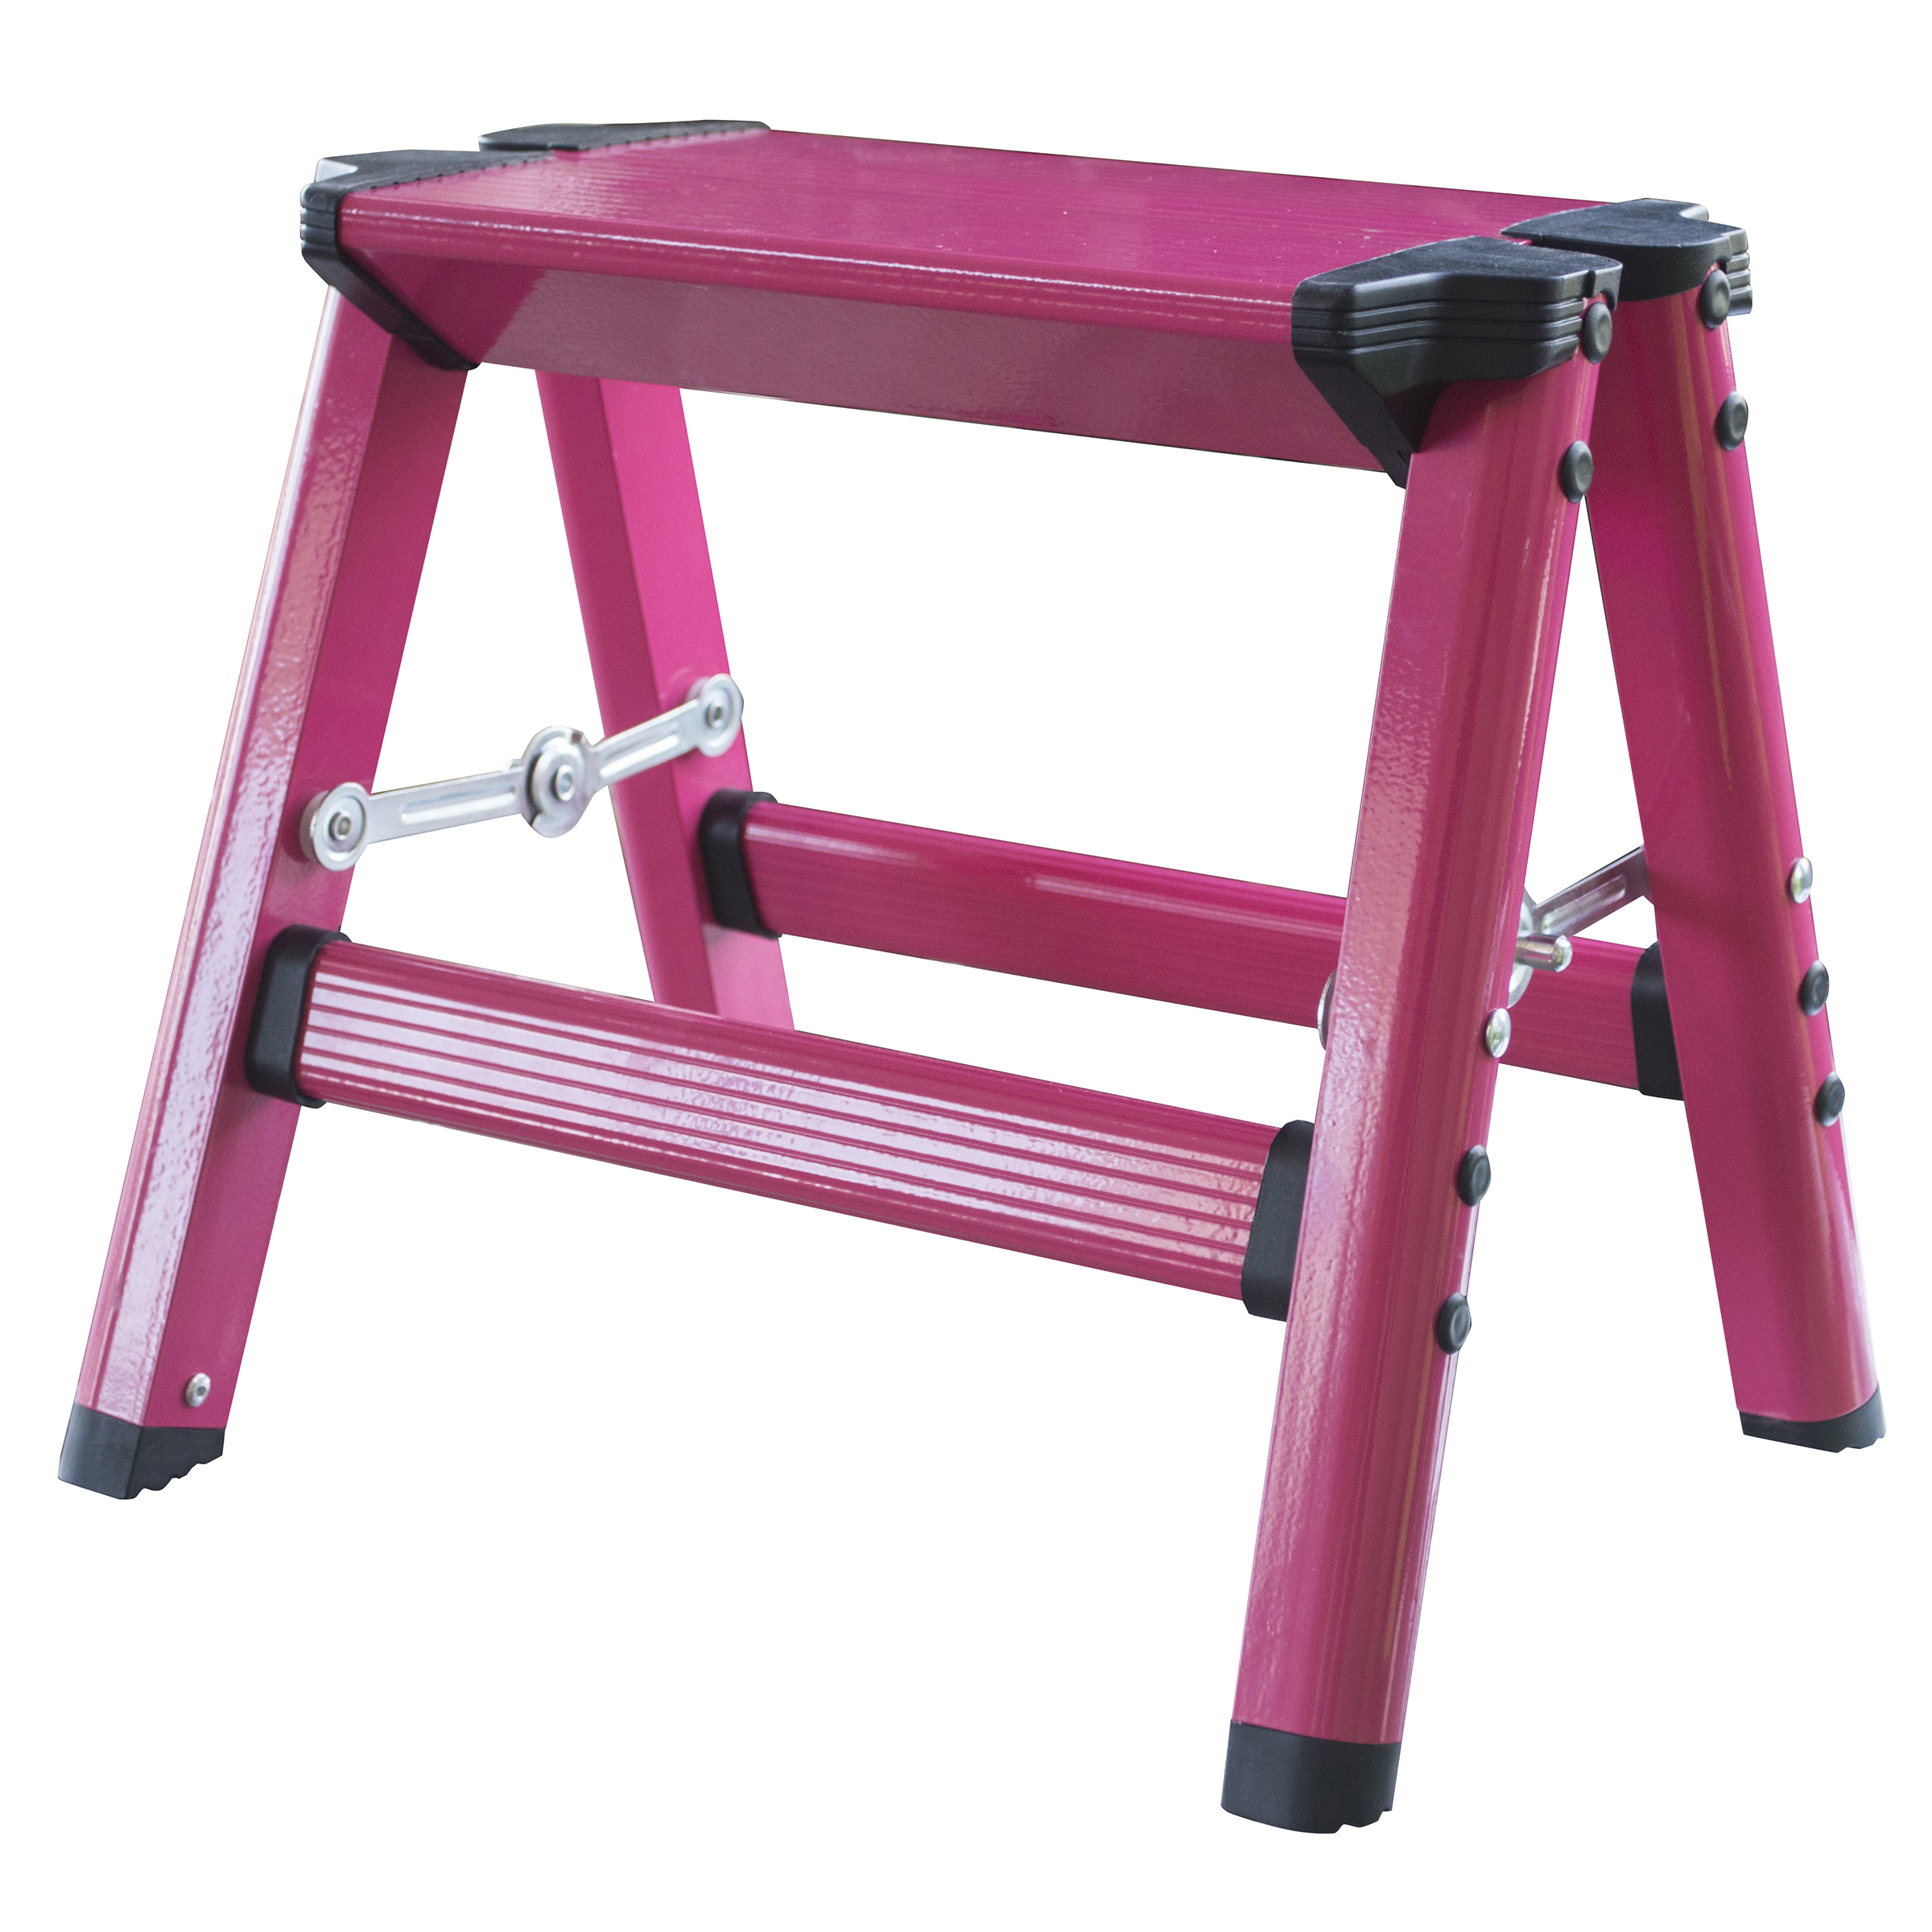 AmeriHome Lightweight Single Step Aluminum Step Stool - Bright Pink